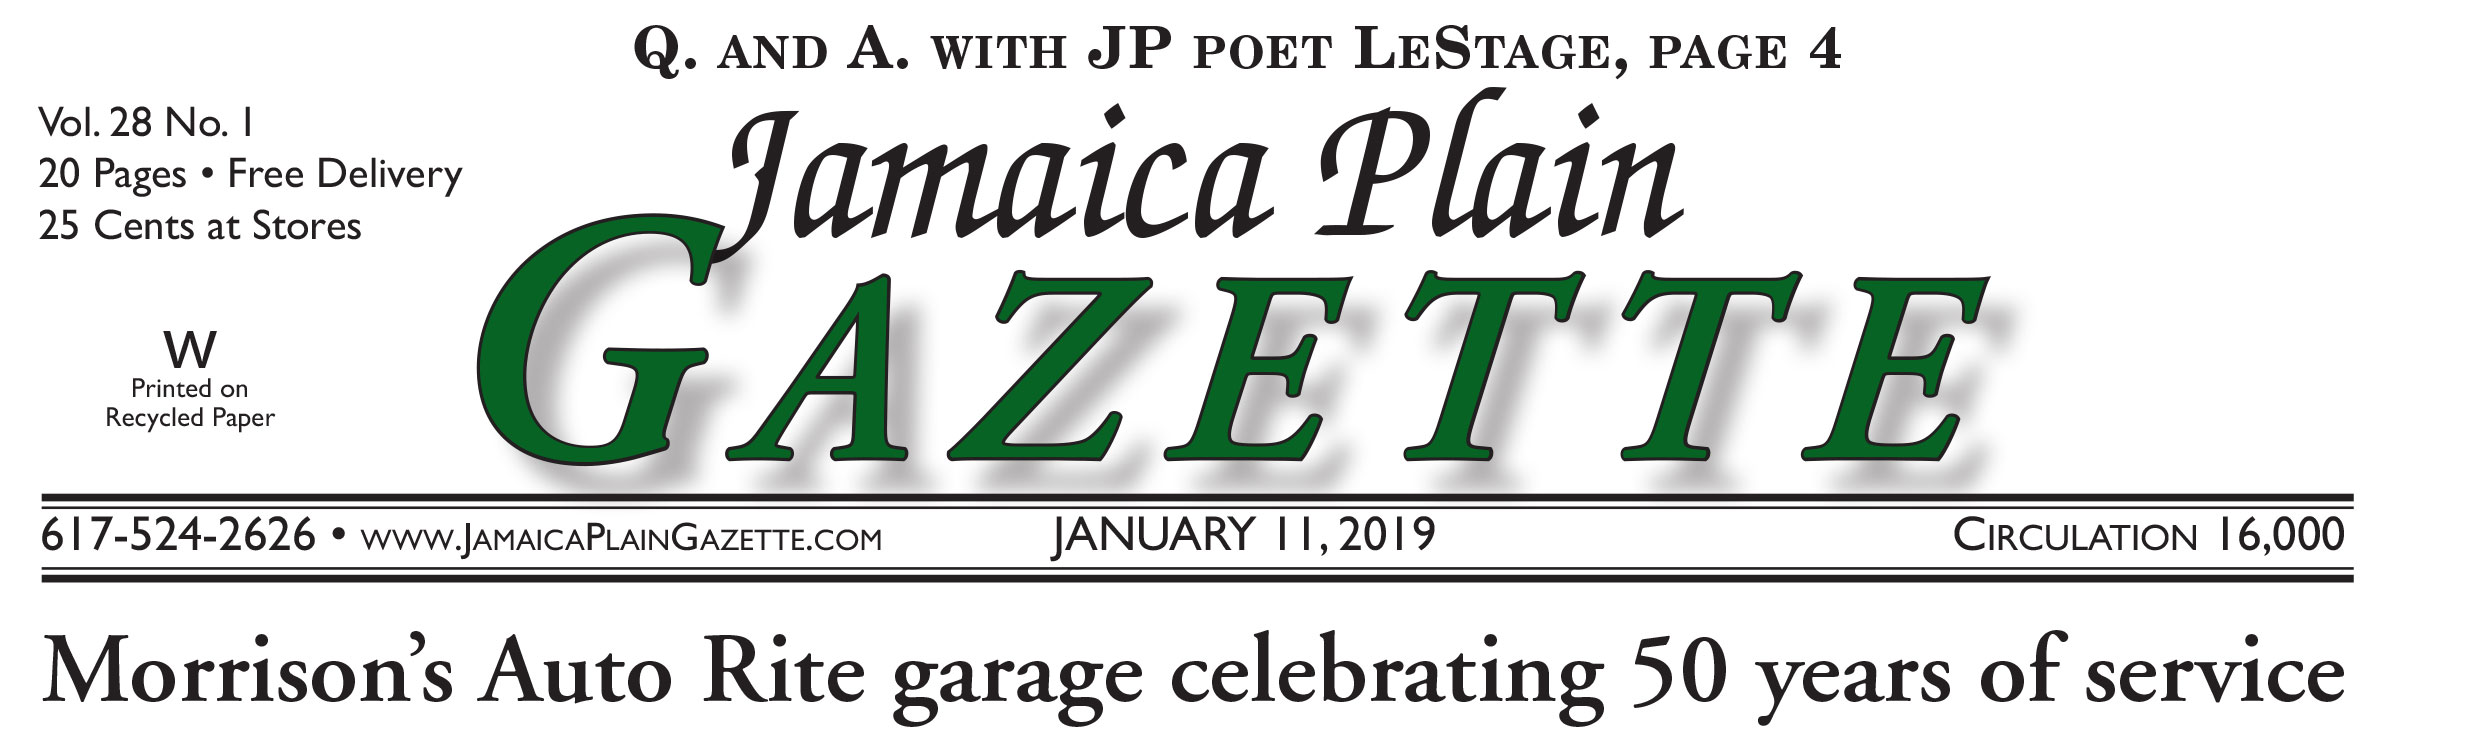 Jamaica Plain Gazette